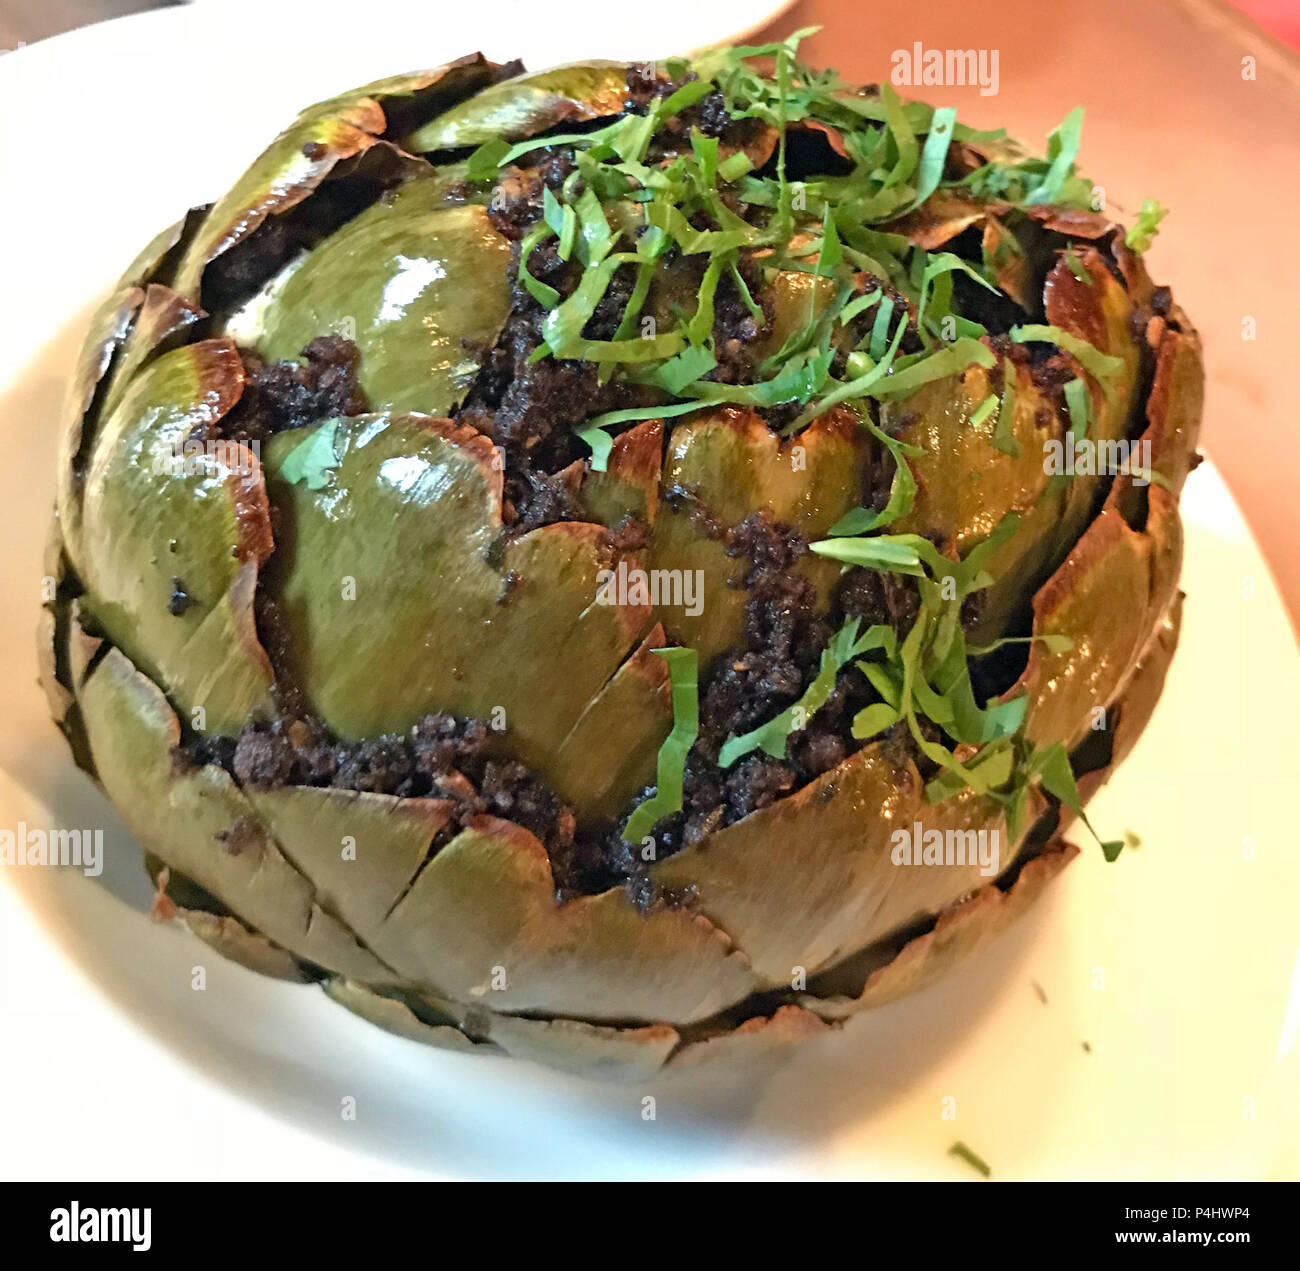 GoTonySmith,@HotpixUK,HotpixUK,Cheese,Olive,Crumb,gourmet,Globe Artichoke,served in Oxford,Magdalen Arms,OX4 1SJ,menu,foodie,gourmand,eat,eating,dining,fine dining,quality,Cynara cardunculus,cooked,baked